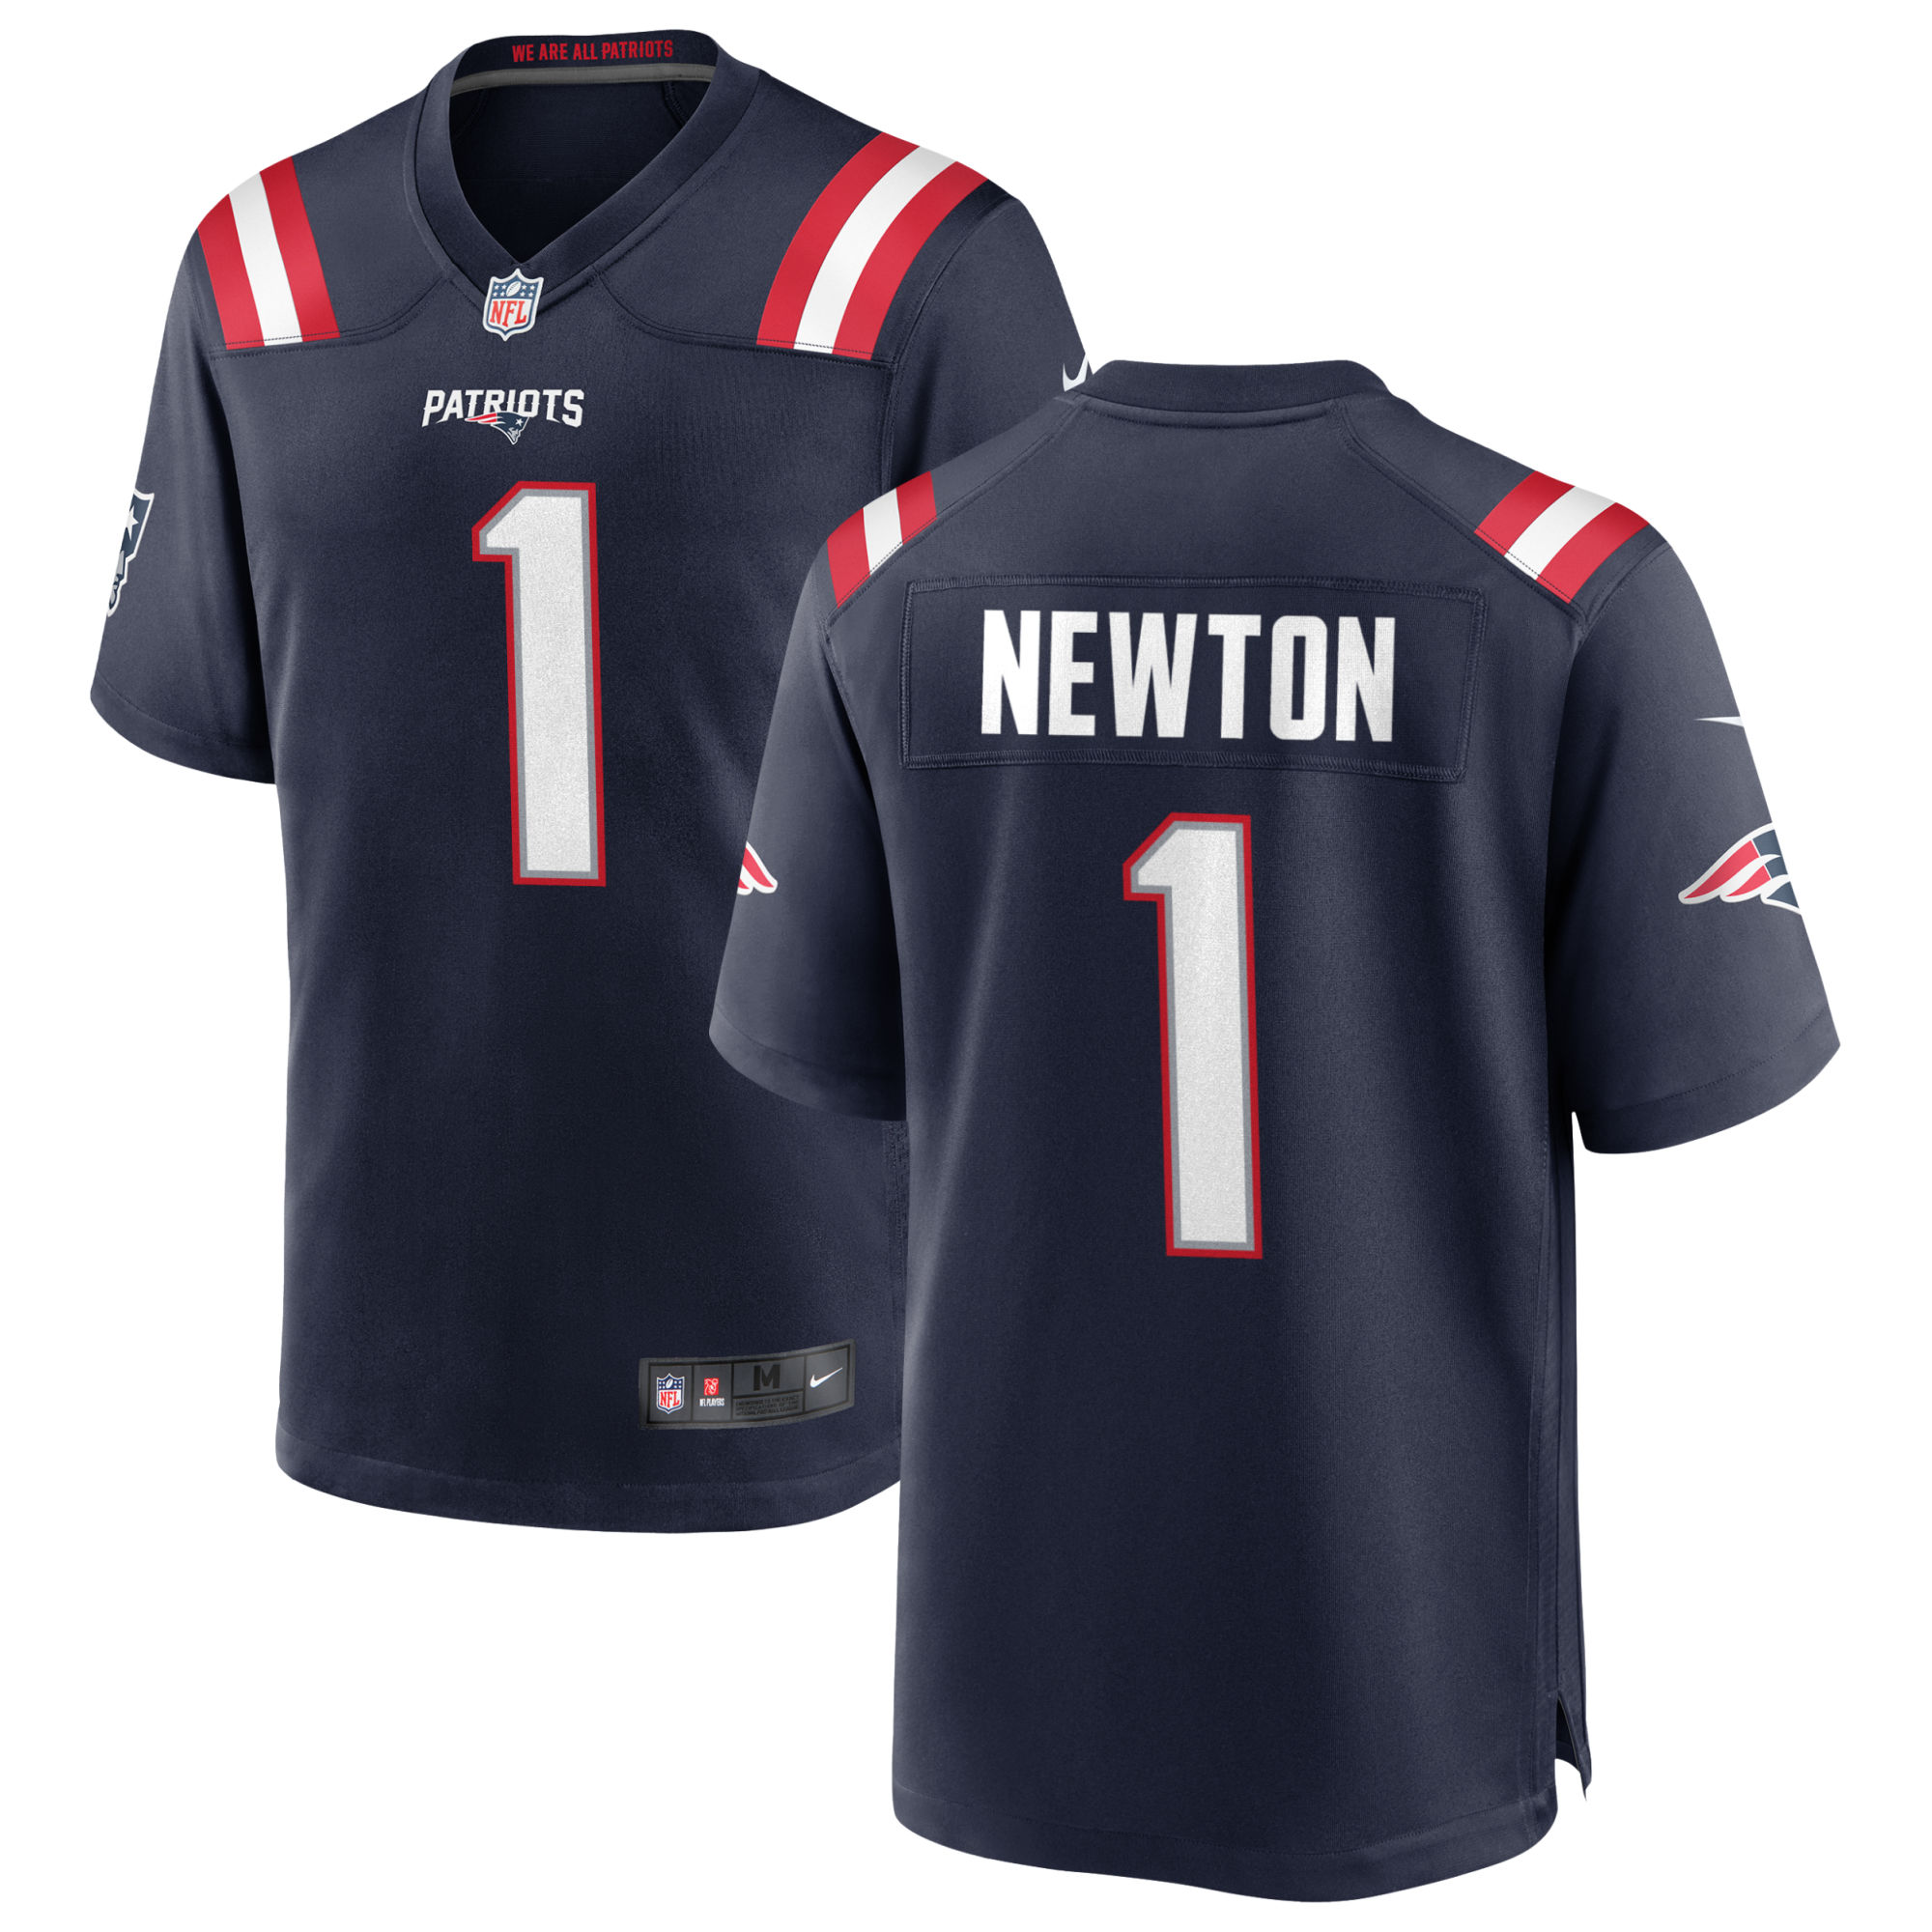 Cam Newton will wear jersey No. 1 for New England Patriots ...